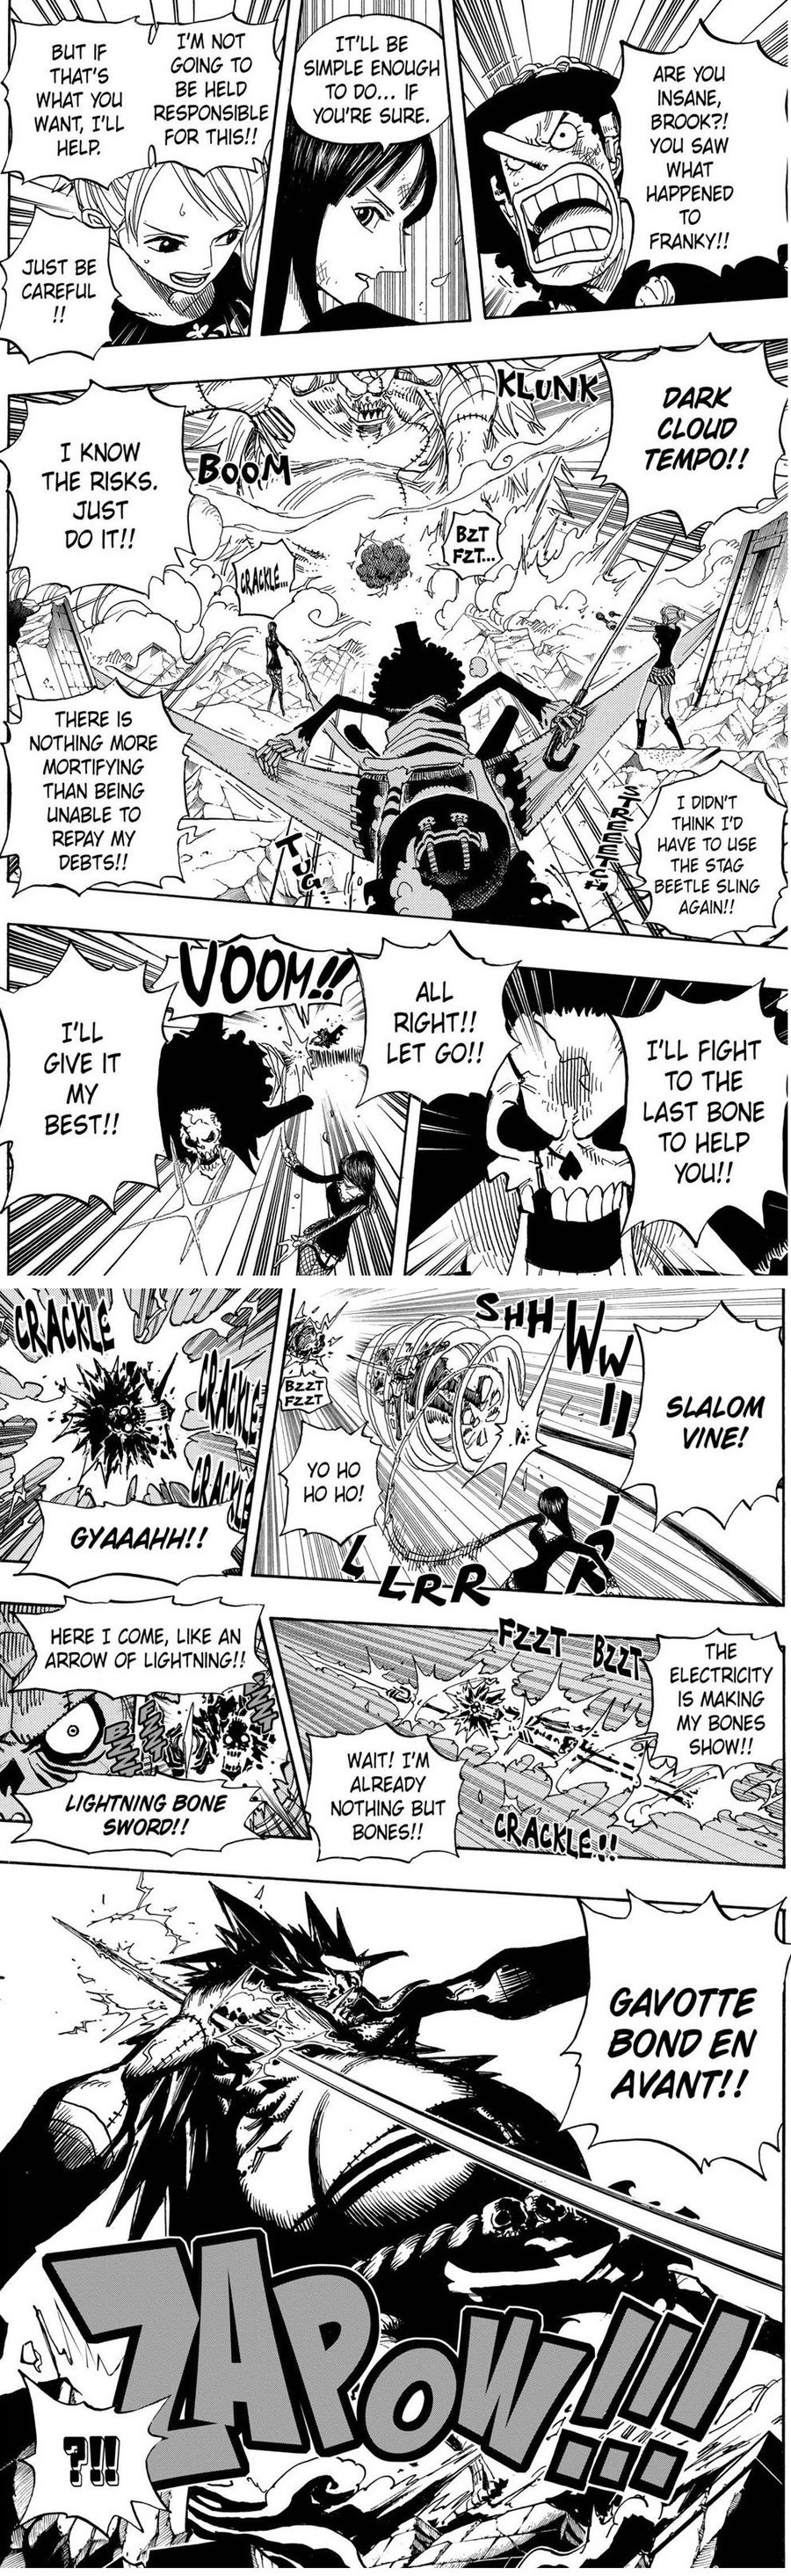 as . join list: onepiece (236 subs)Mention History.. Brook is one of my favorite characters. Super funny but knows how to serious the up when needed.